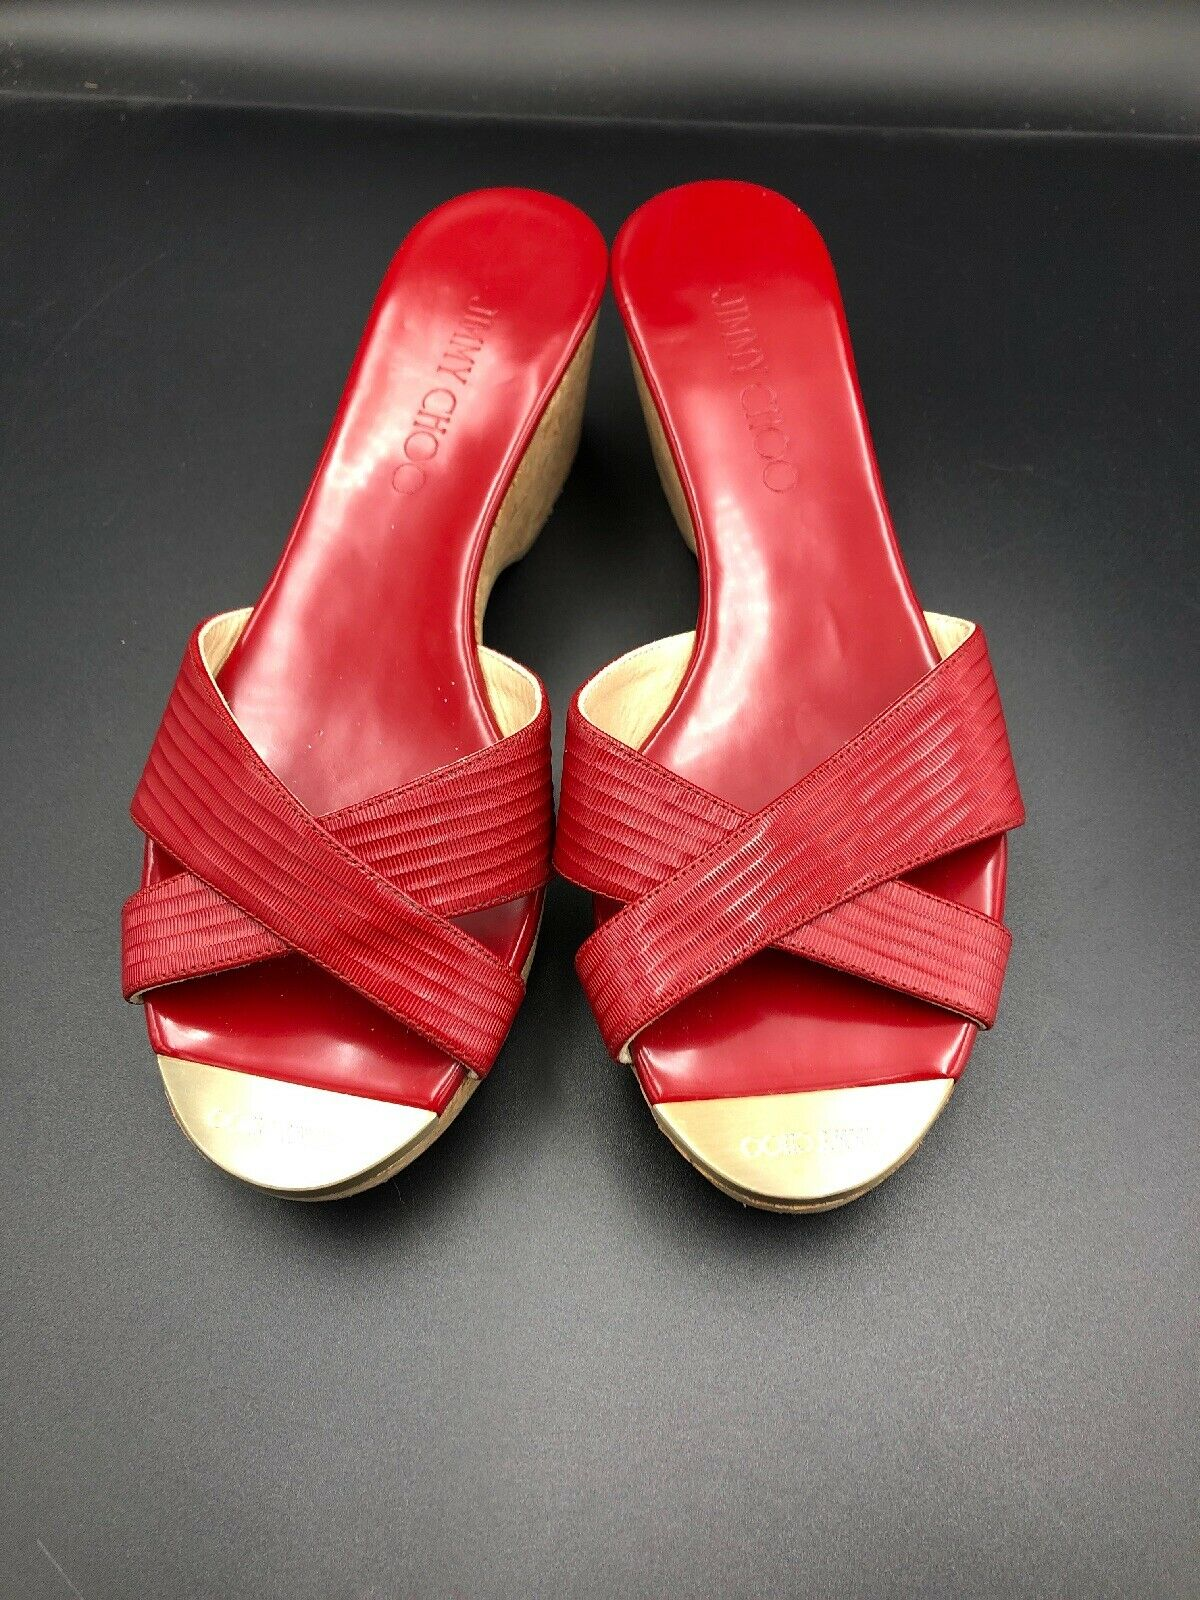 JIMMY CHOO 'Panna' Wedge Mid Heel Sandals schuhe rot Leather Größe Uk 4 Eu 37 New